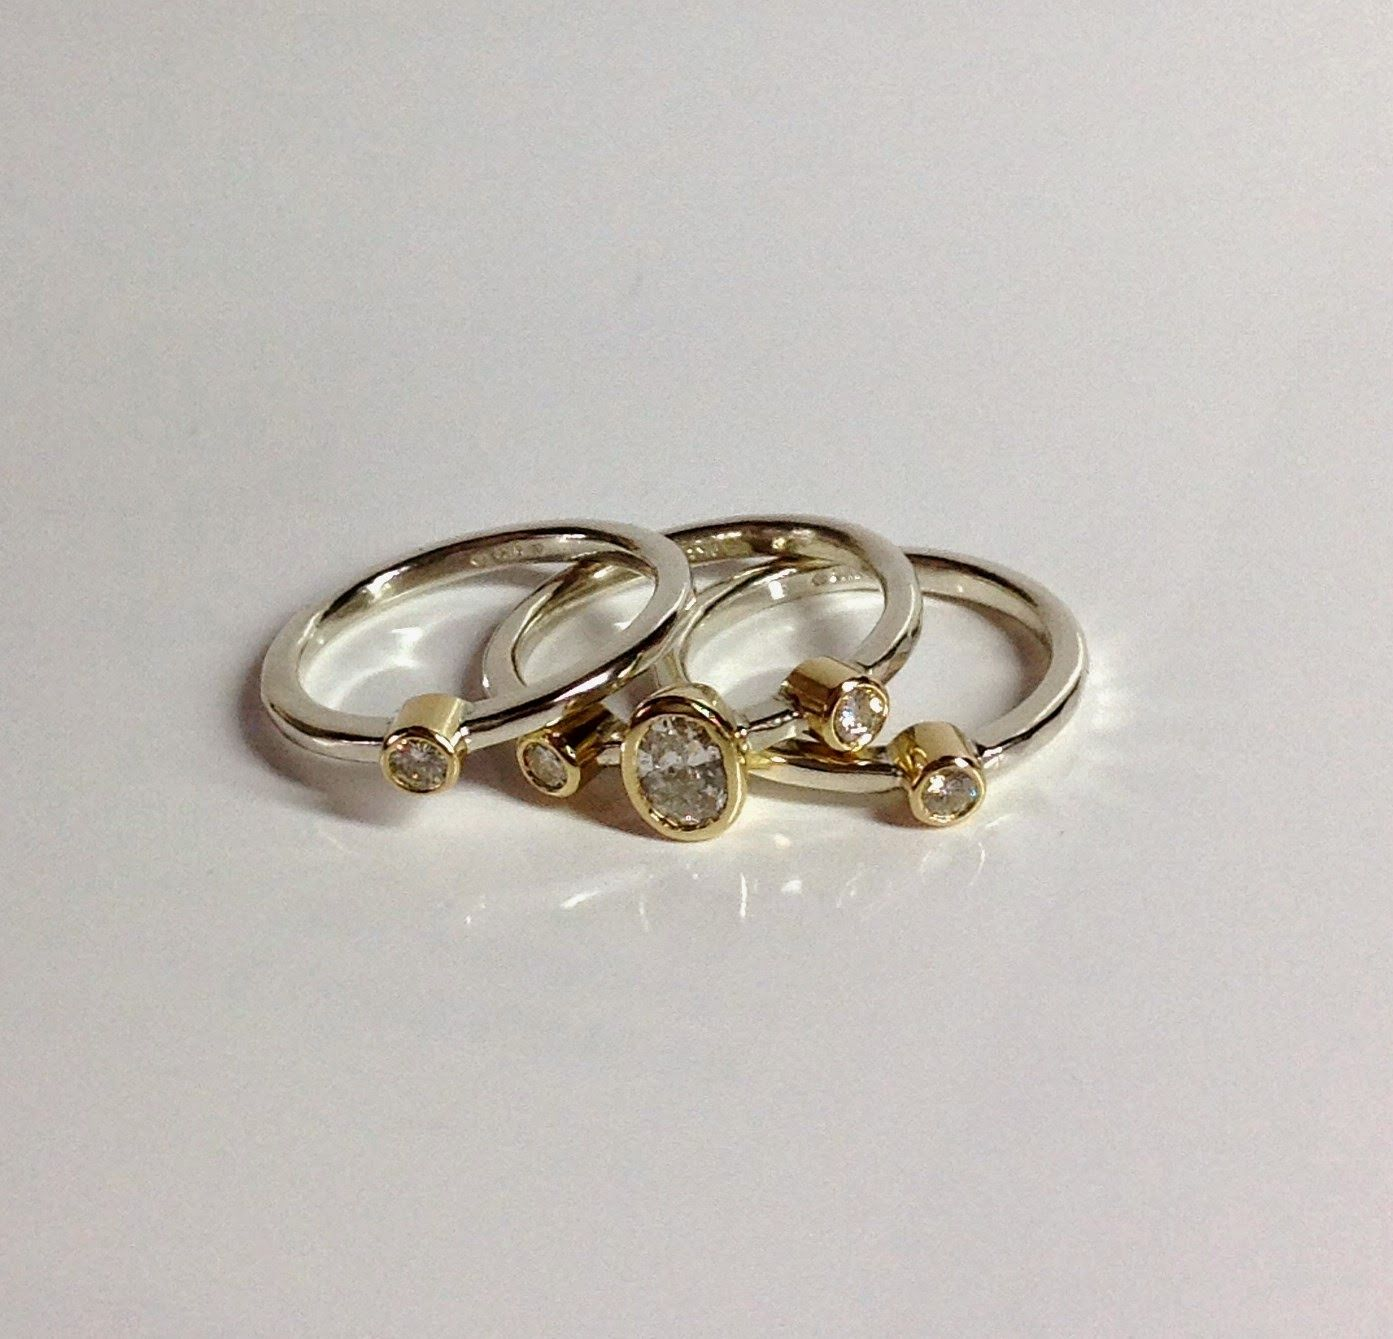 Sophie Honeybourne Jewellery: Humble Apologies but a whole lot of rings!